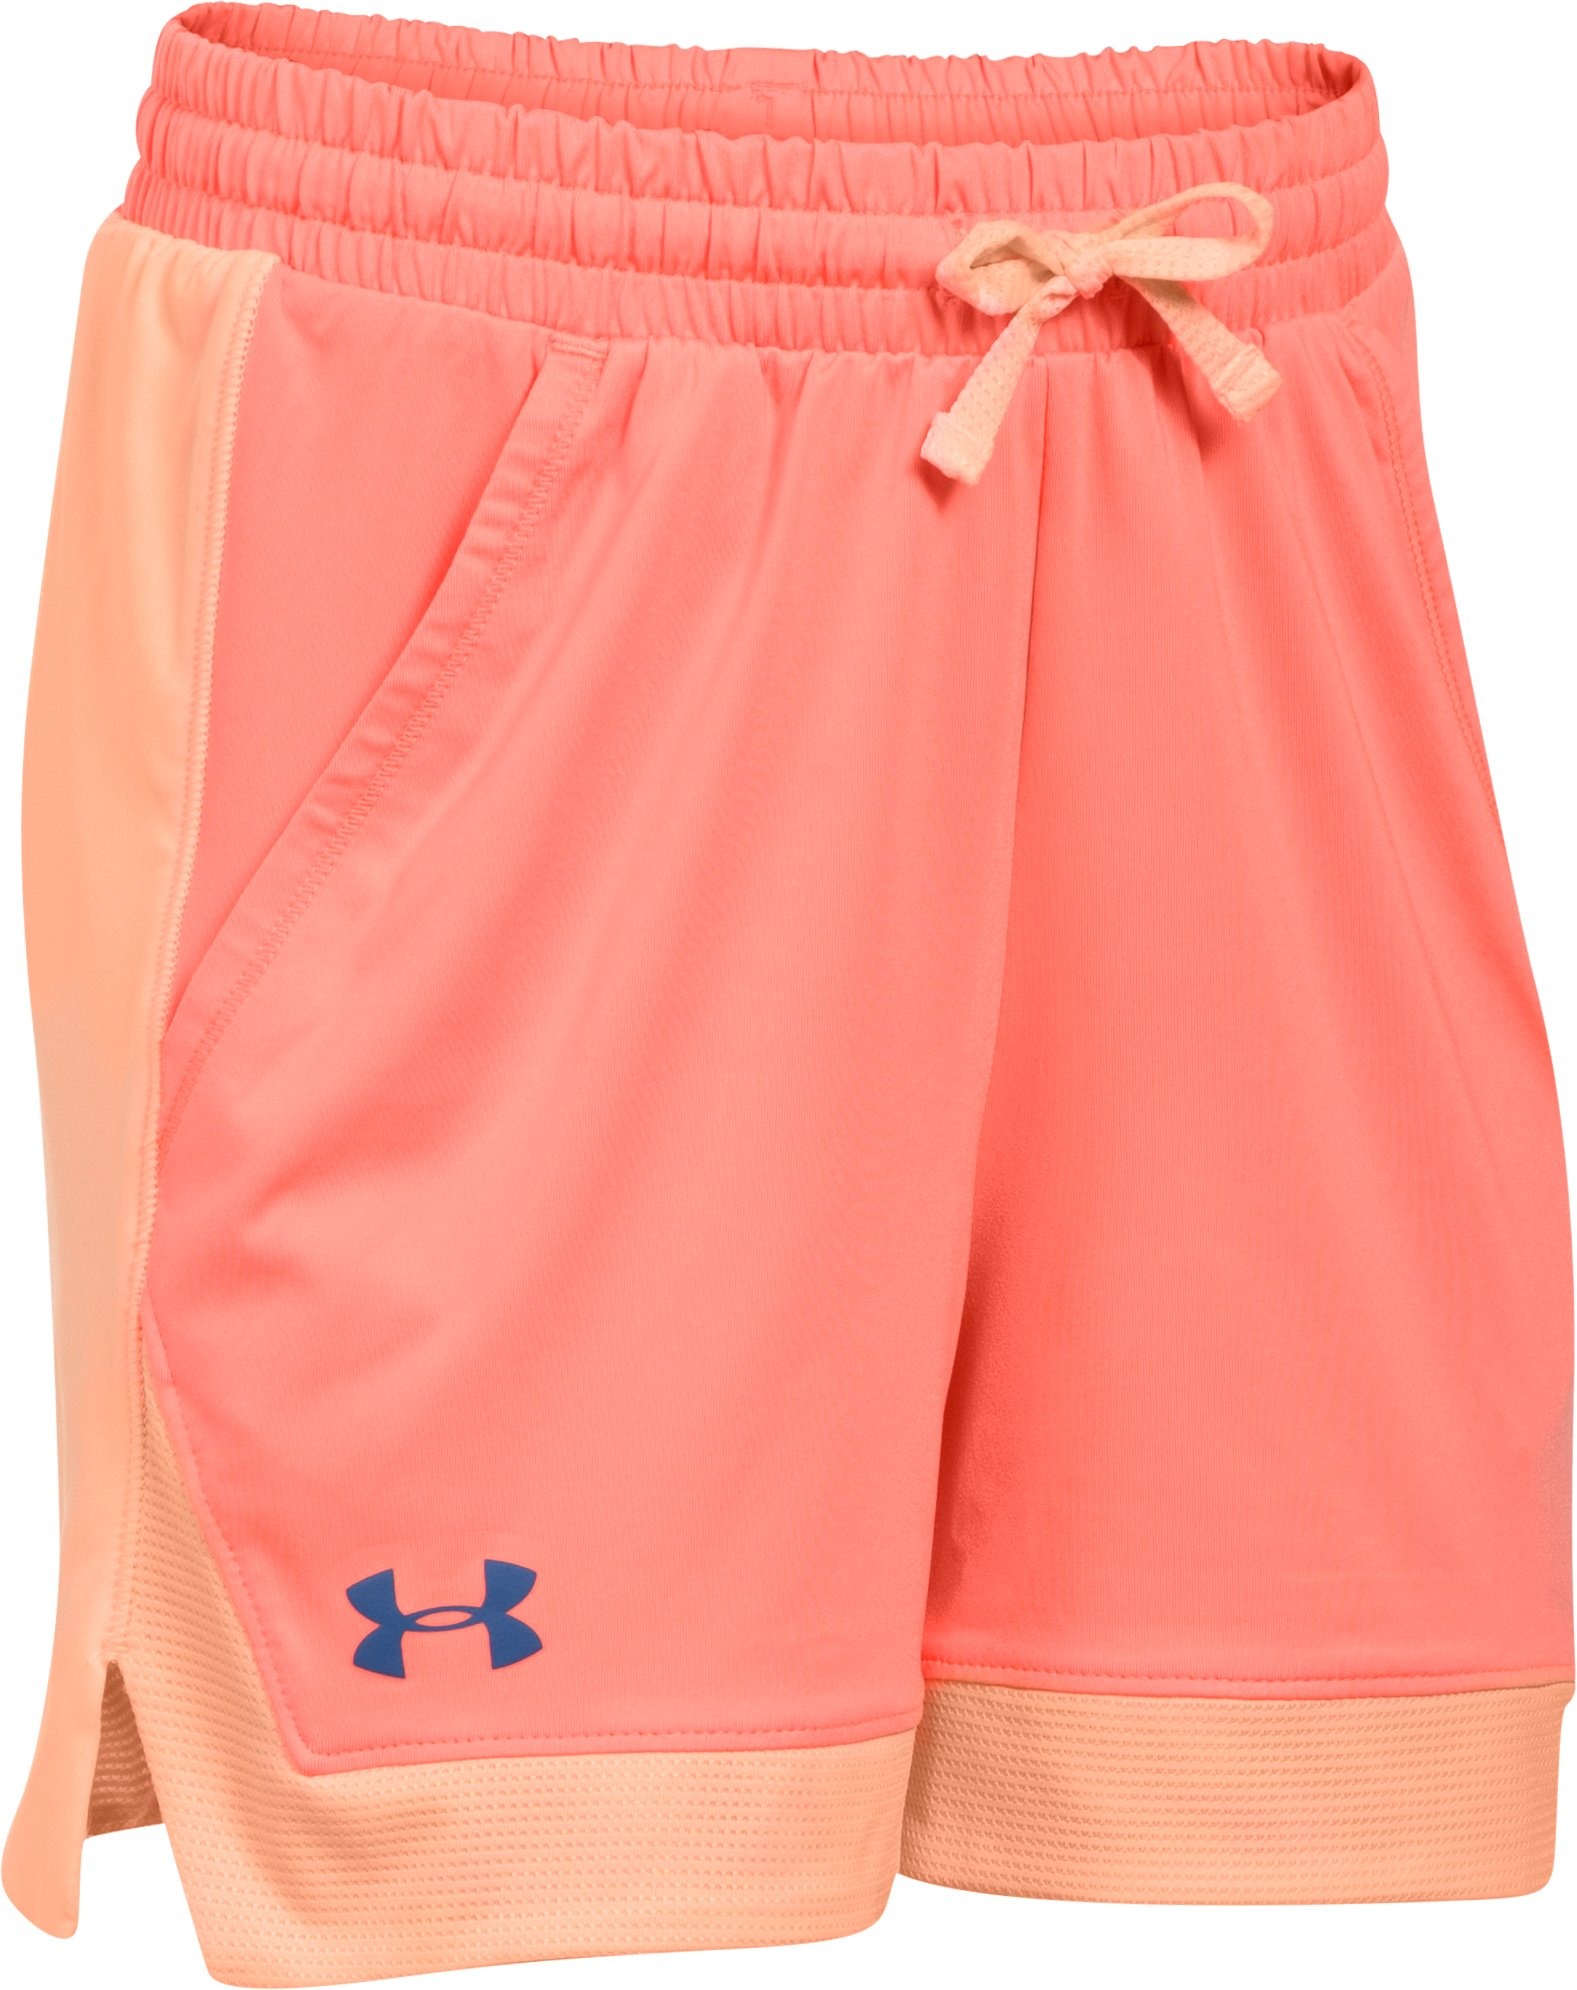 Girls' Armour Sports Shorts, LONDON ORANGE